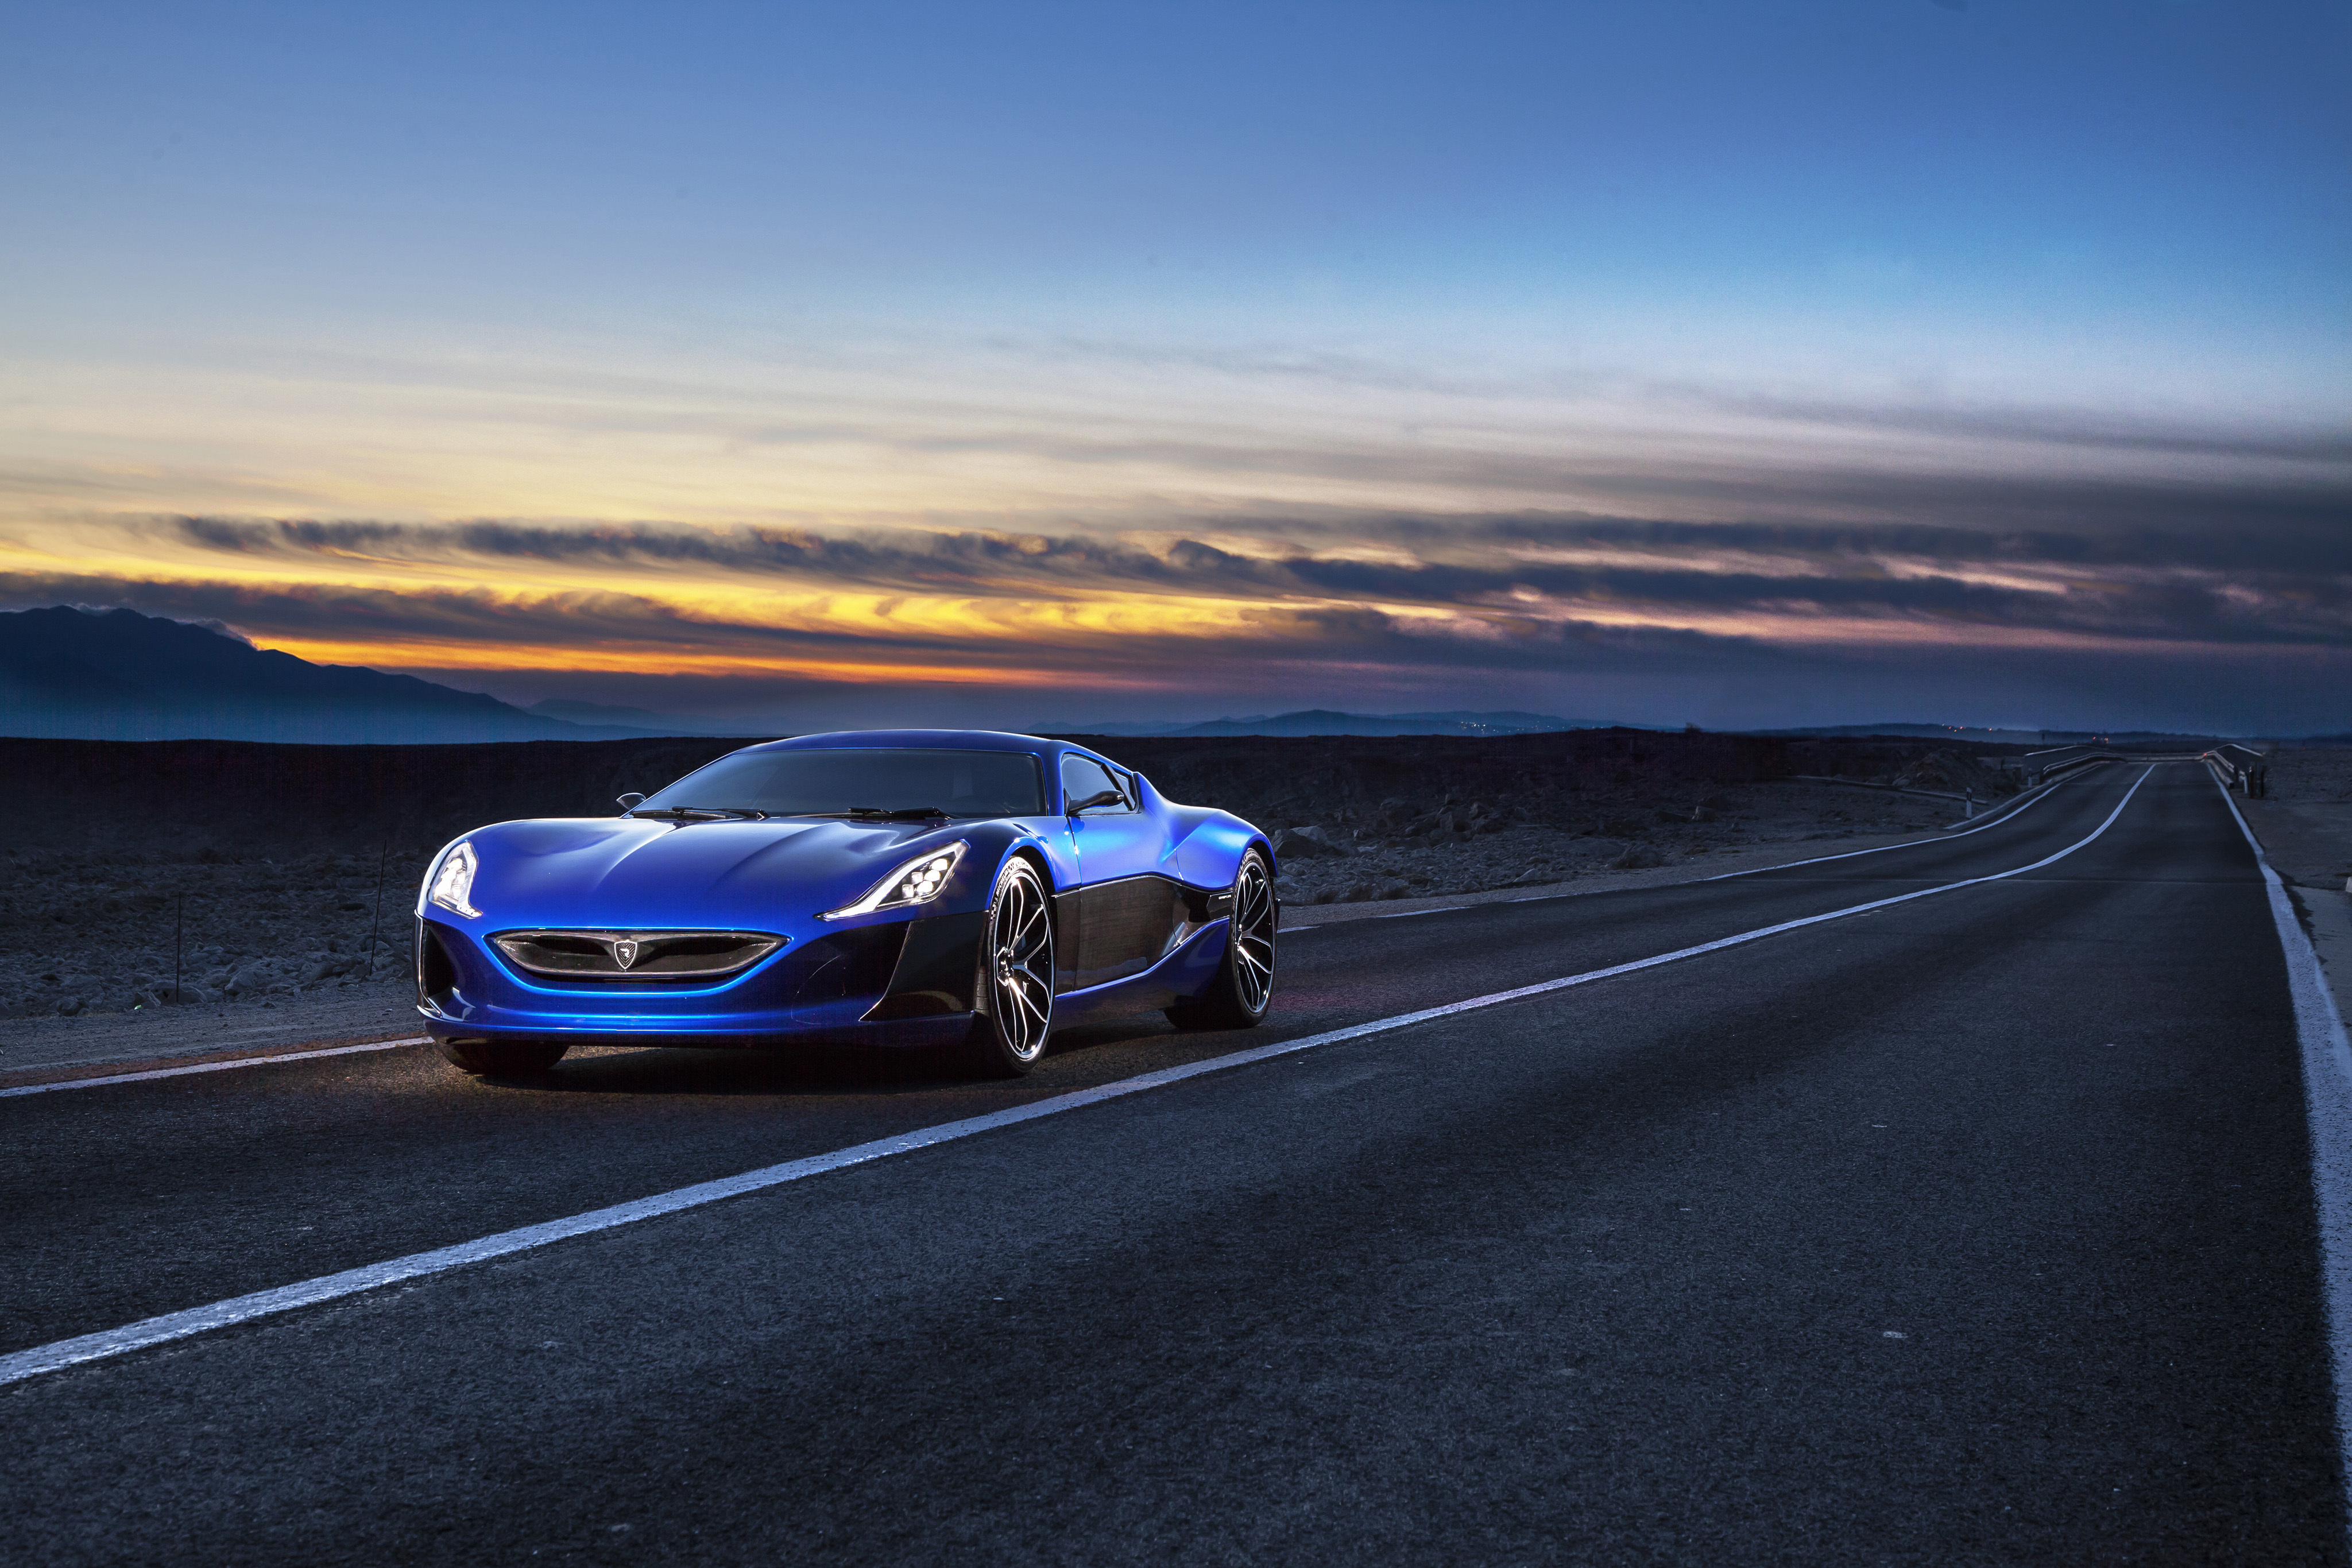 Rimac Concept One, HD Cars, 4k Wallpapers, Images